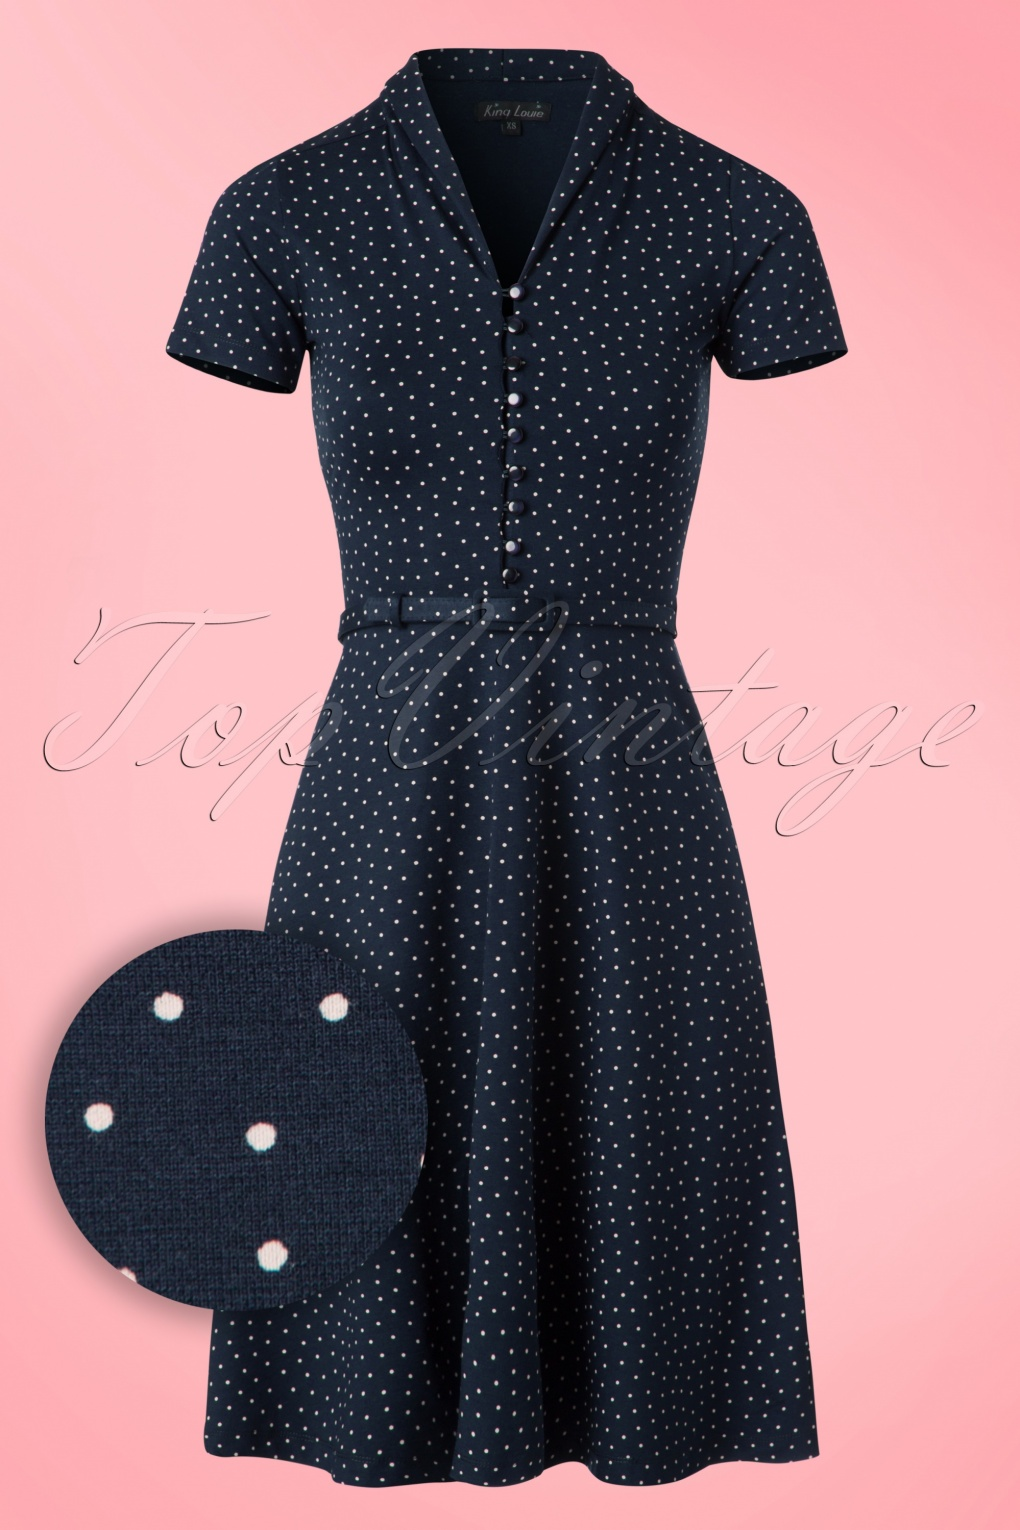 1950s Polka Dot Dresses 40s Emmy Little Dots Dress in Nuit Blue £86.82 AT vintagedancer.com